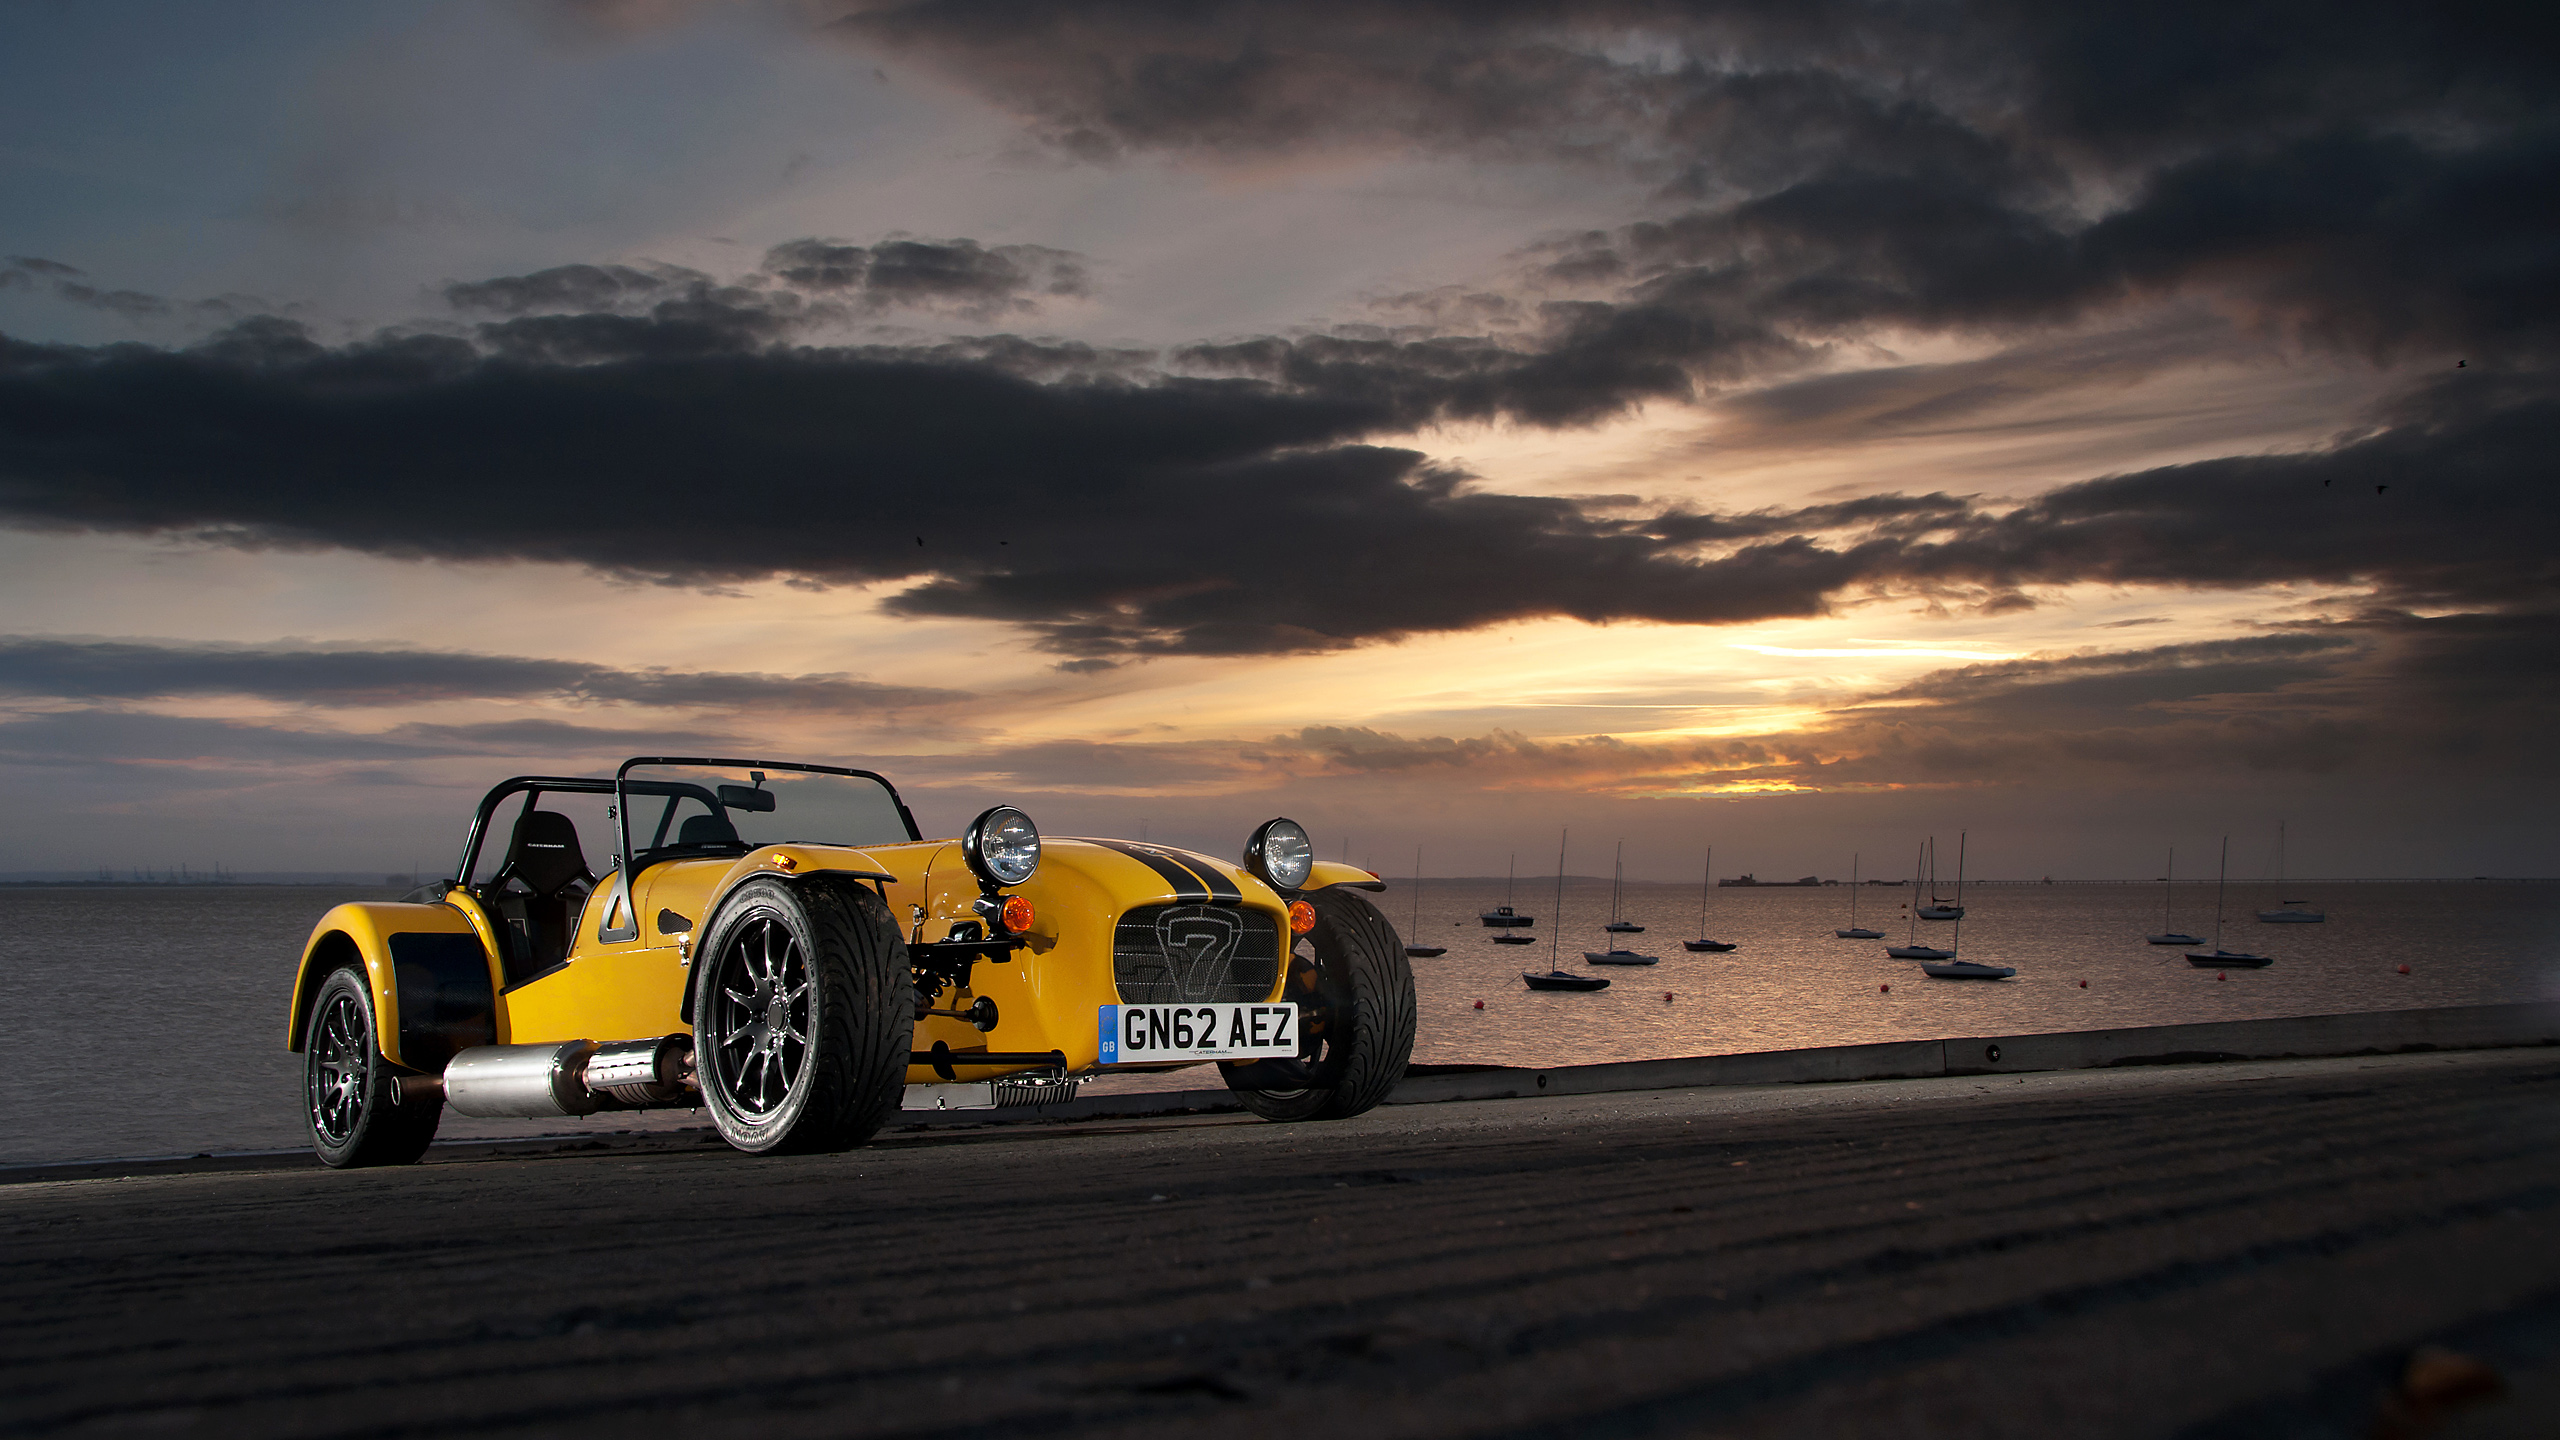 Super Cool Car Wallpapers 5 Caterham Supersport R Hd Wallpapers Background Images